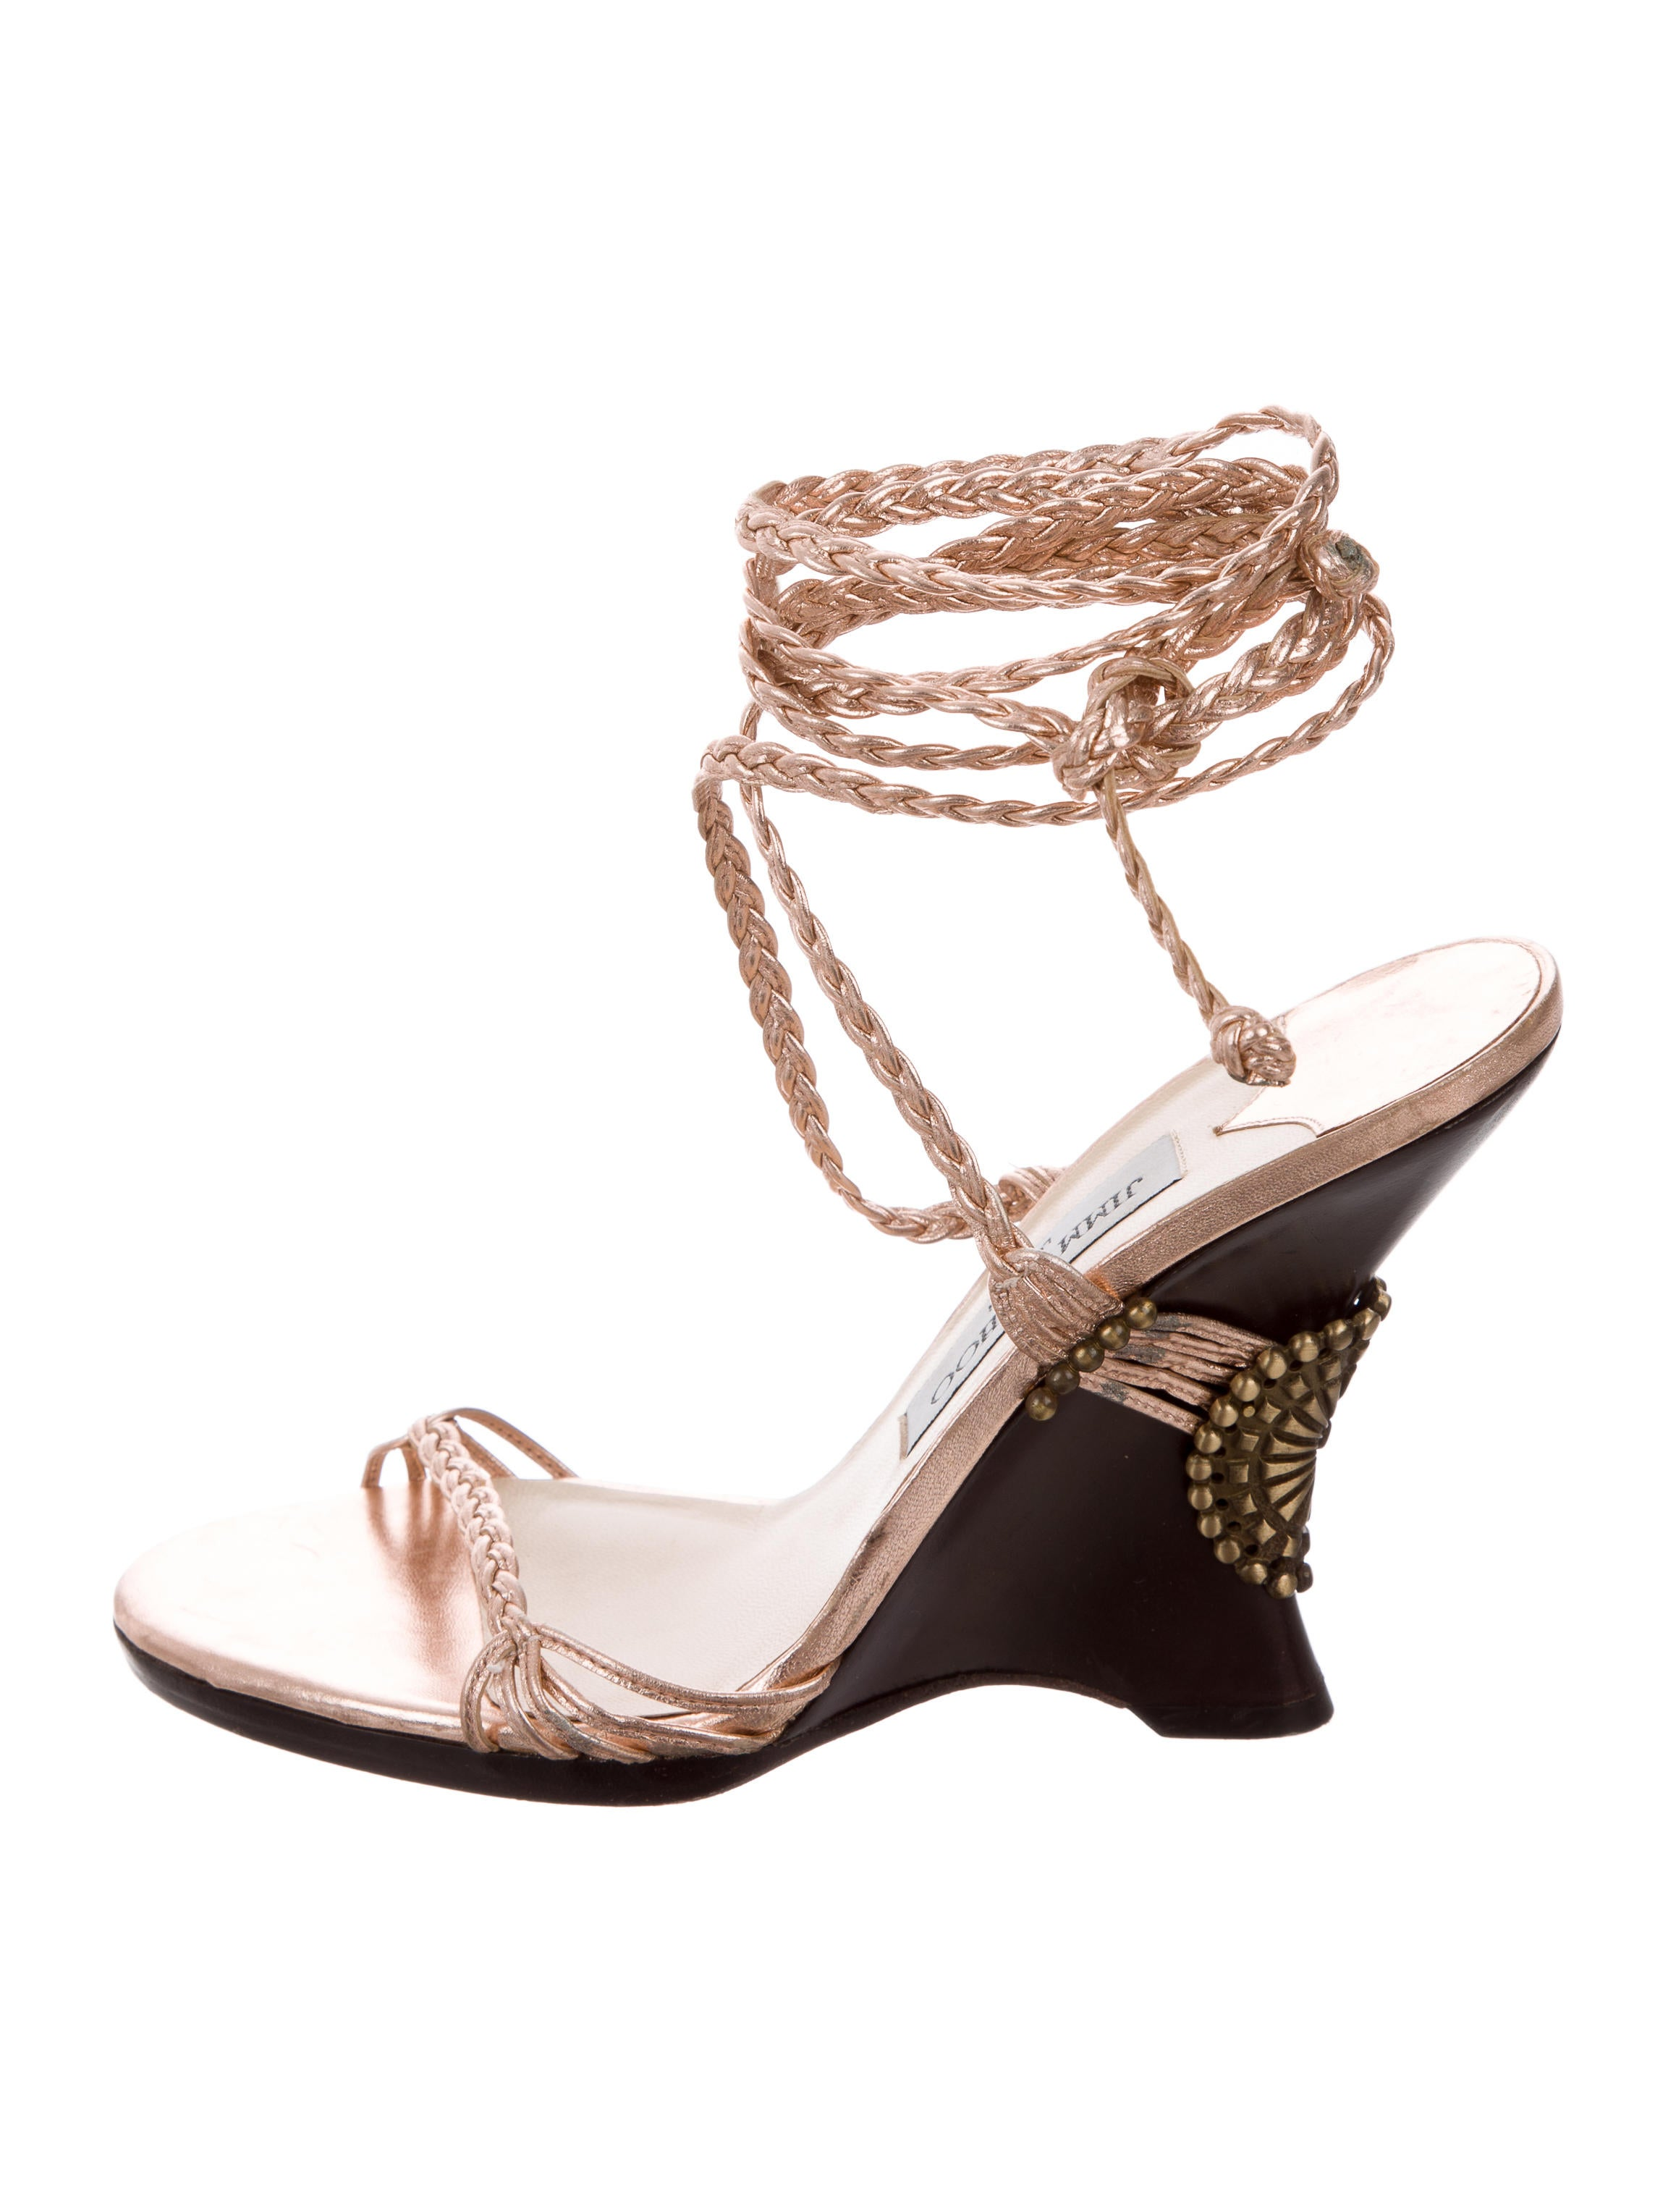 Jimmy Choo Wedge Lace-Up Sandals - Shoes - JIM77770 | The ...